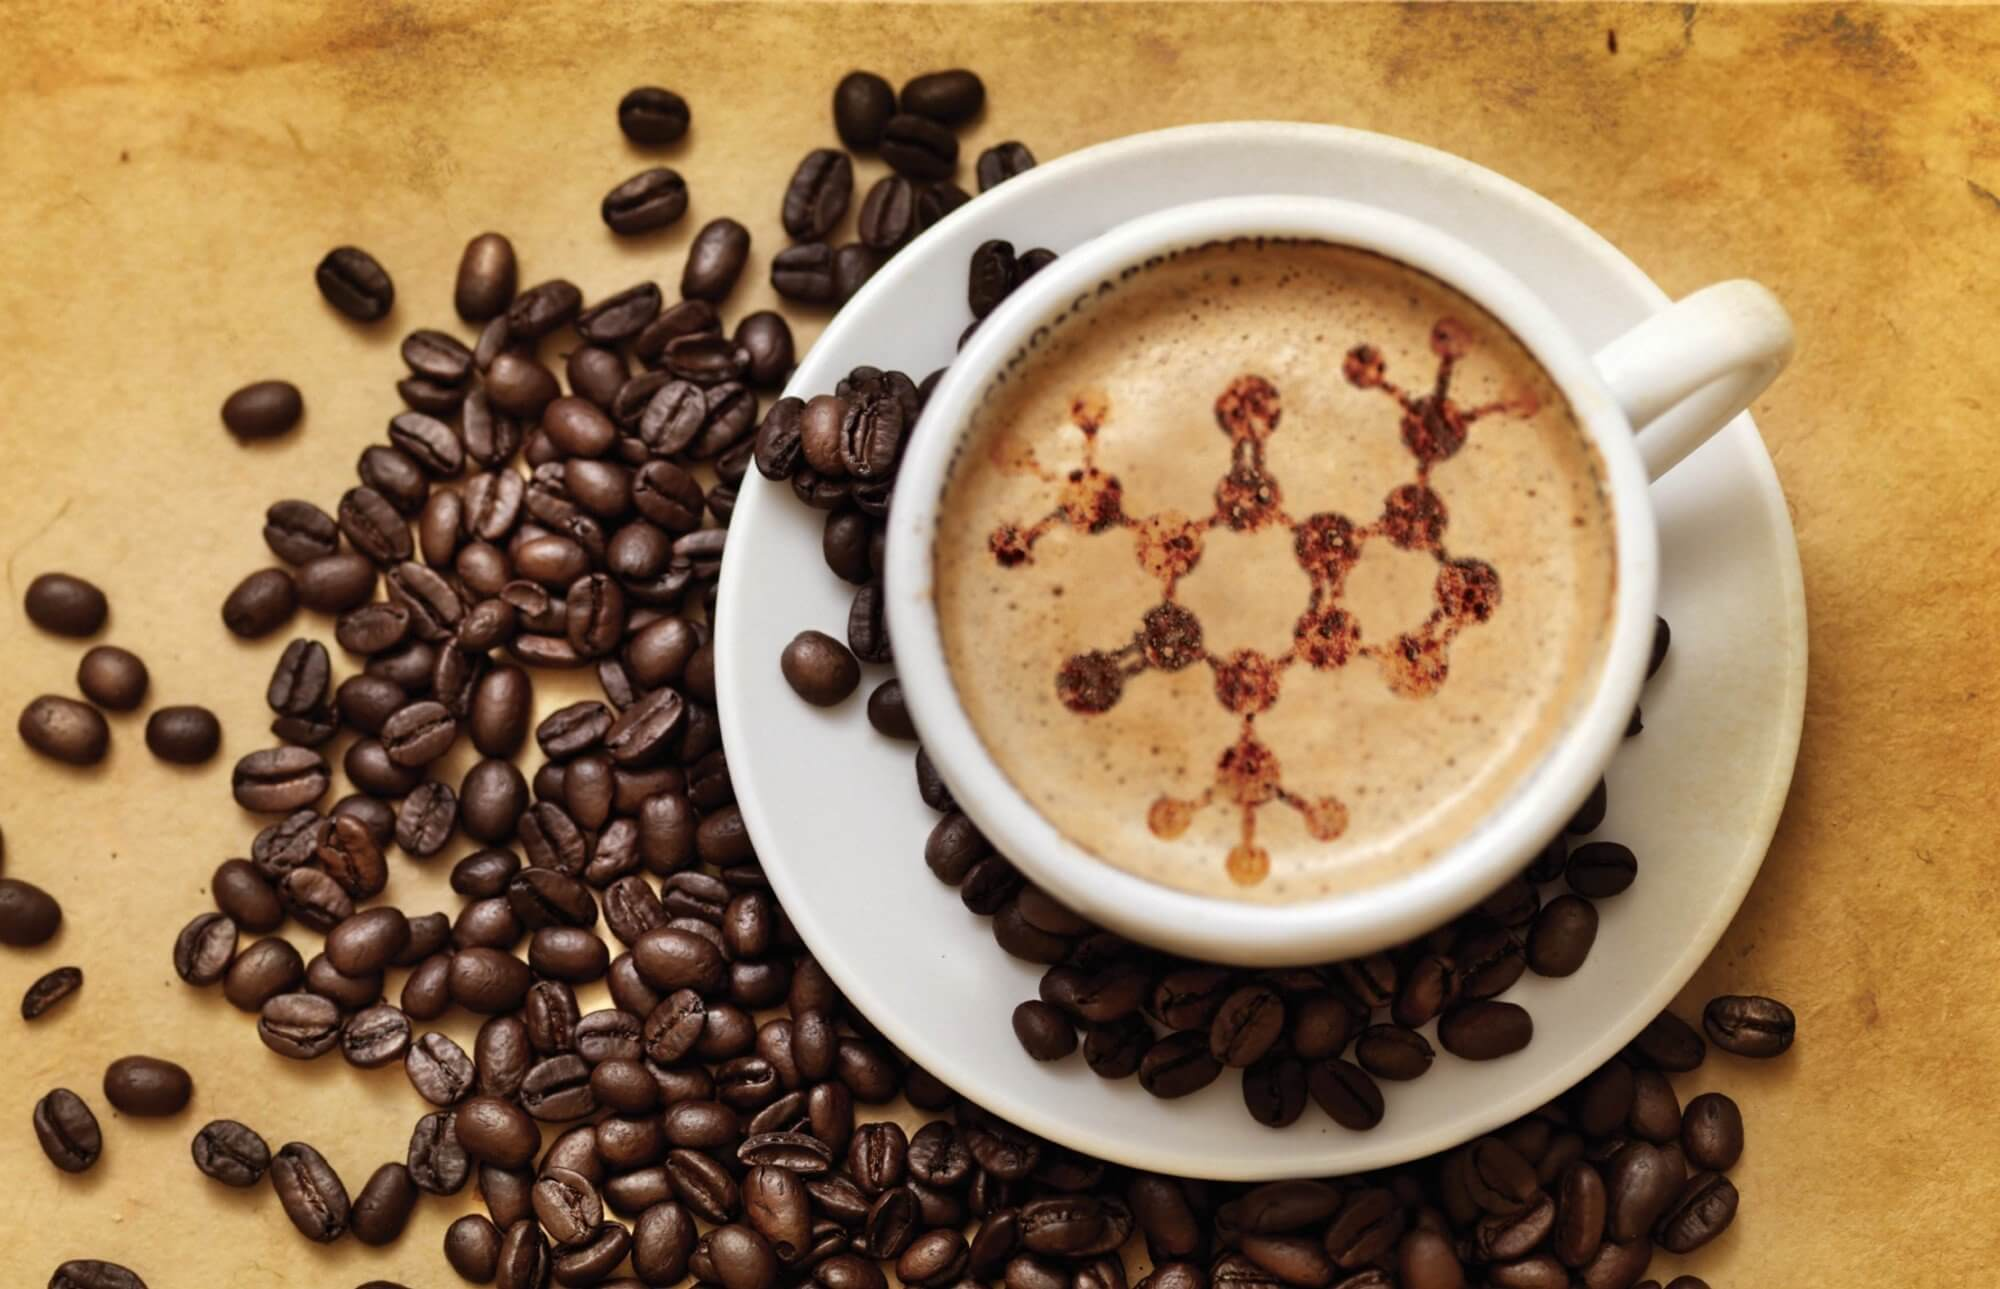 Gene editing could produce more flavorful decaf coffee — and combat public's anti-GMO sentiment